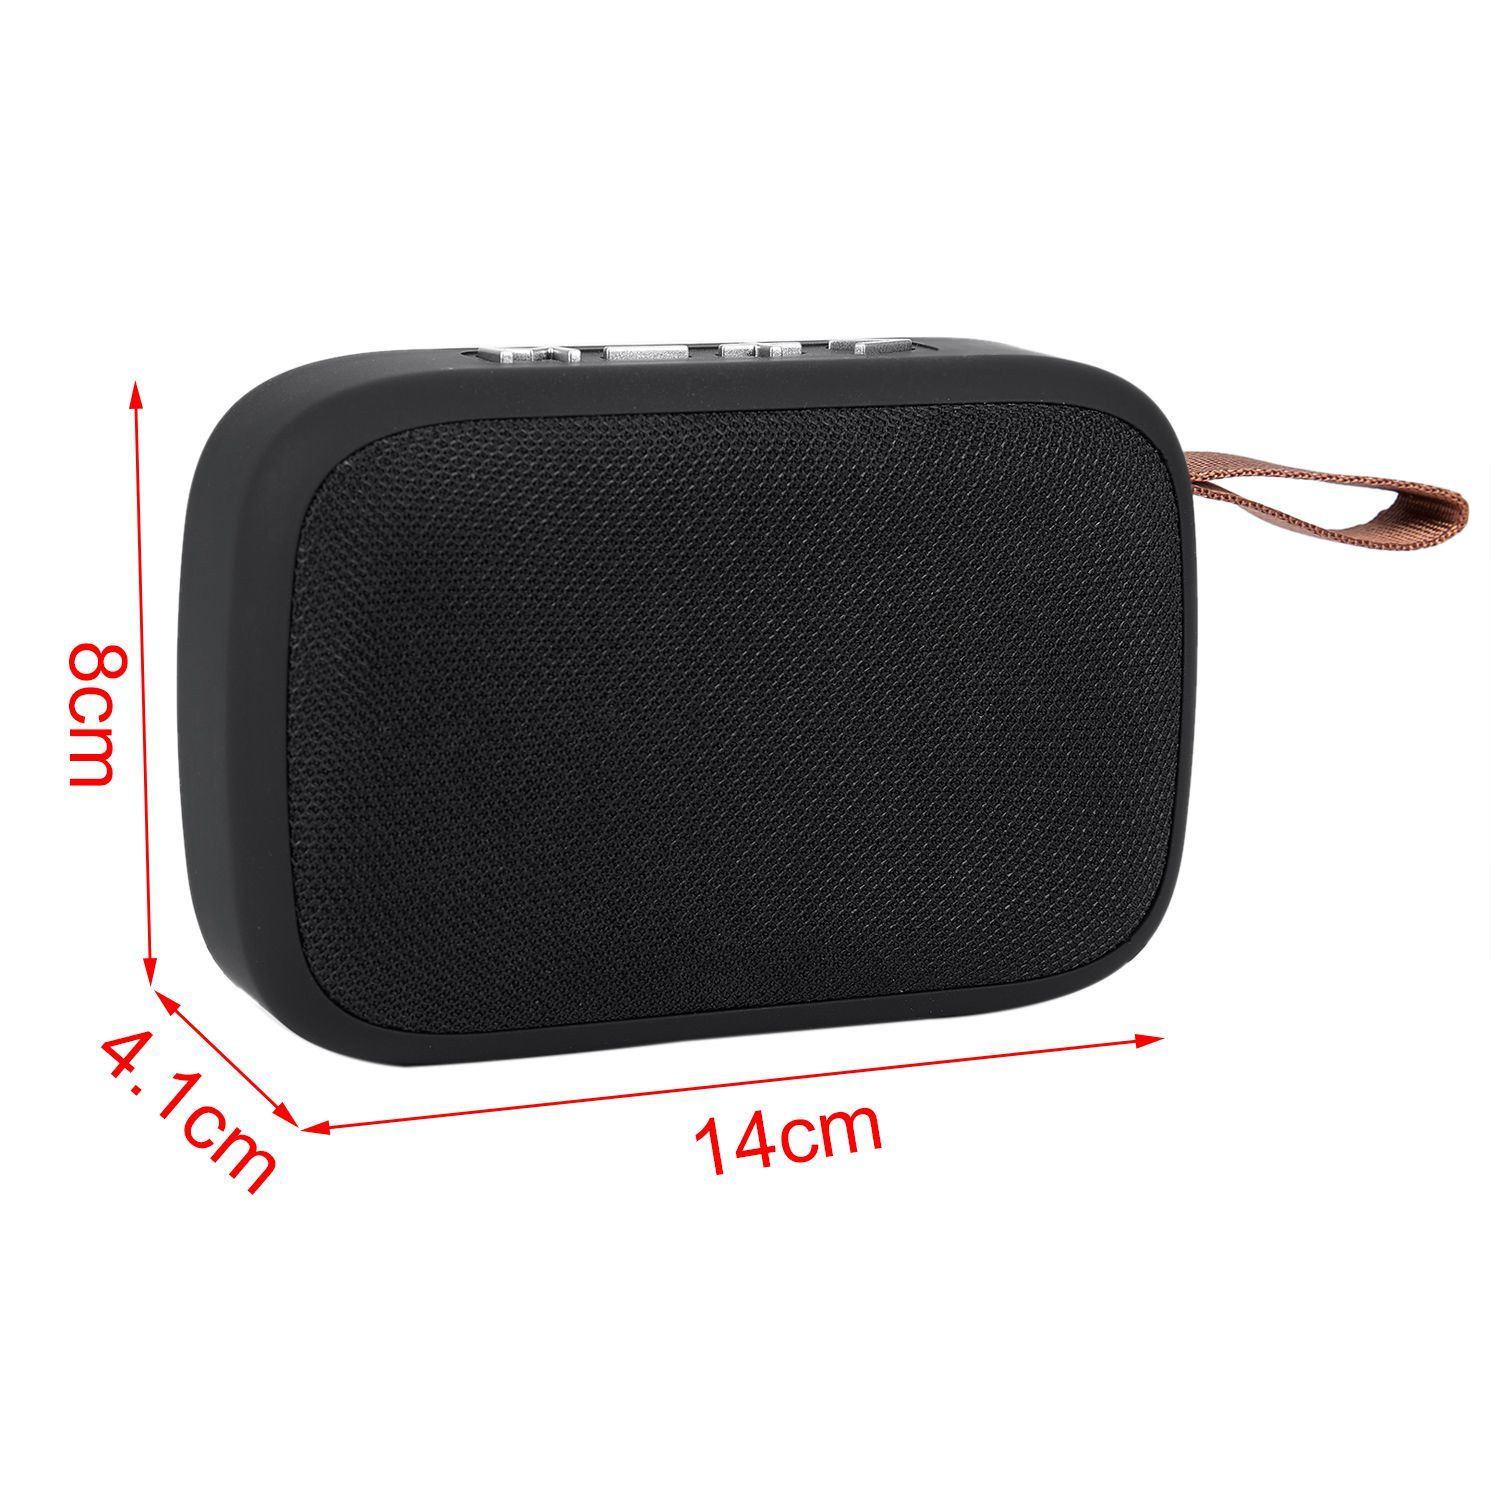 G2 Portable Bluetooth Speaker with HD Audio, Stereo Wireless Speakers with FM Radio, Better Bass, Support Micro-SD/TF Card / U